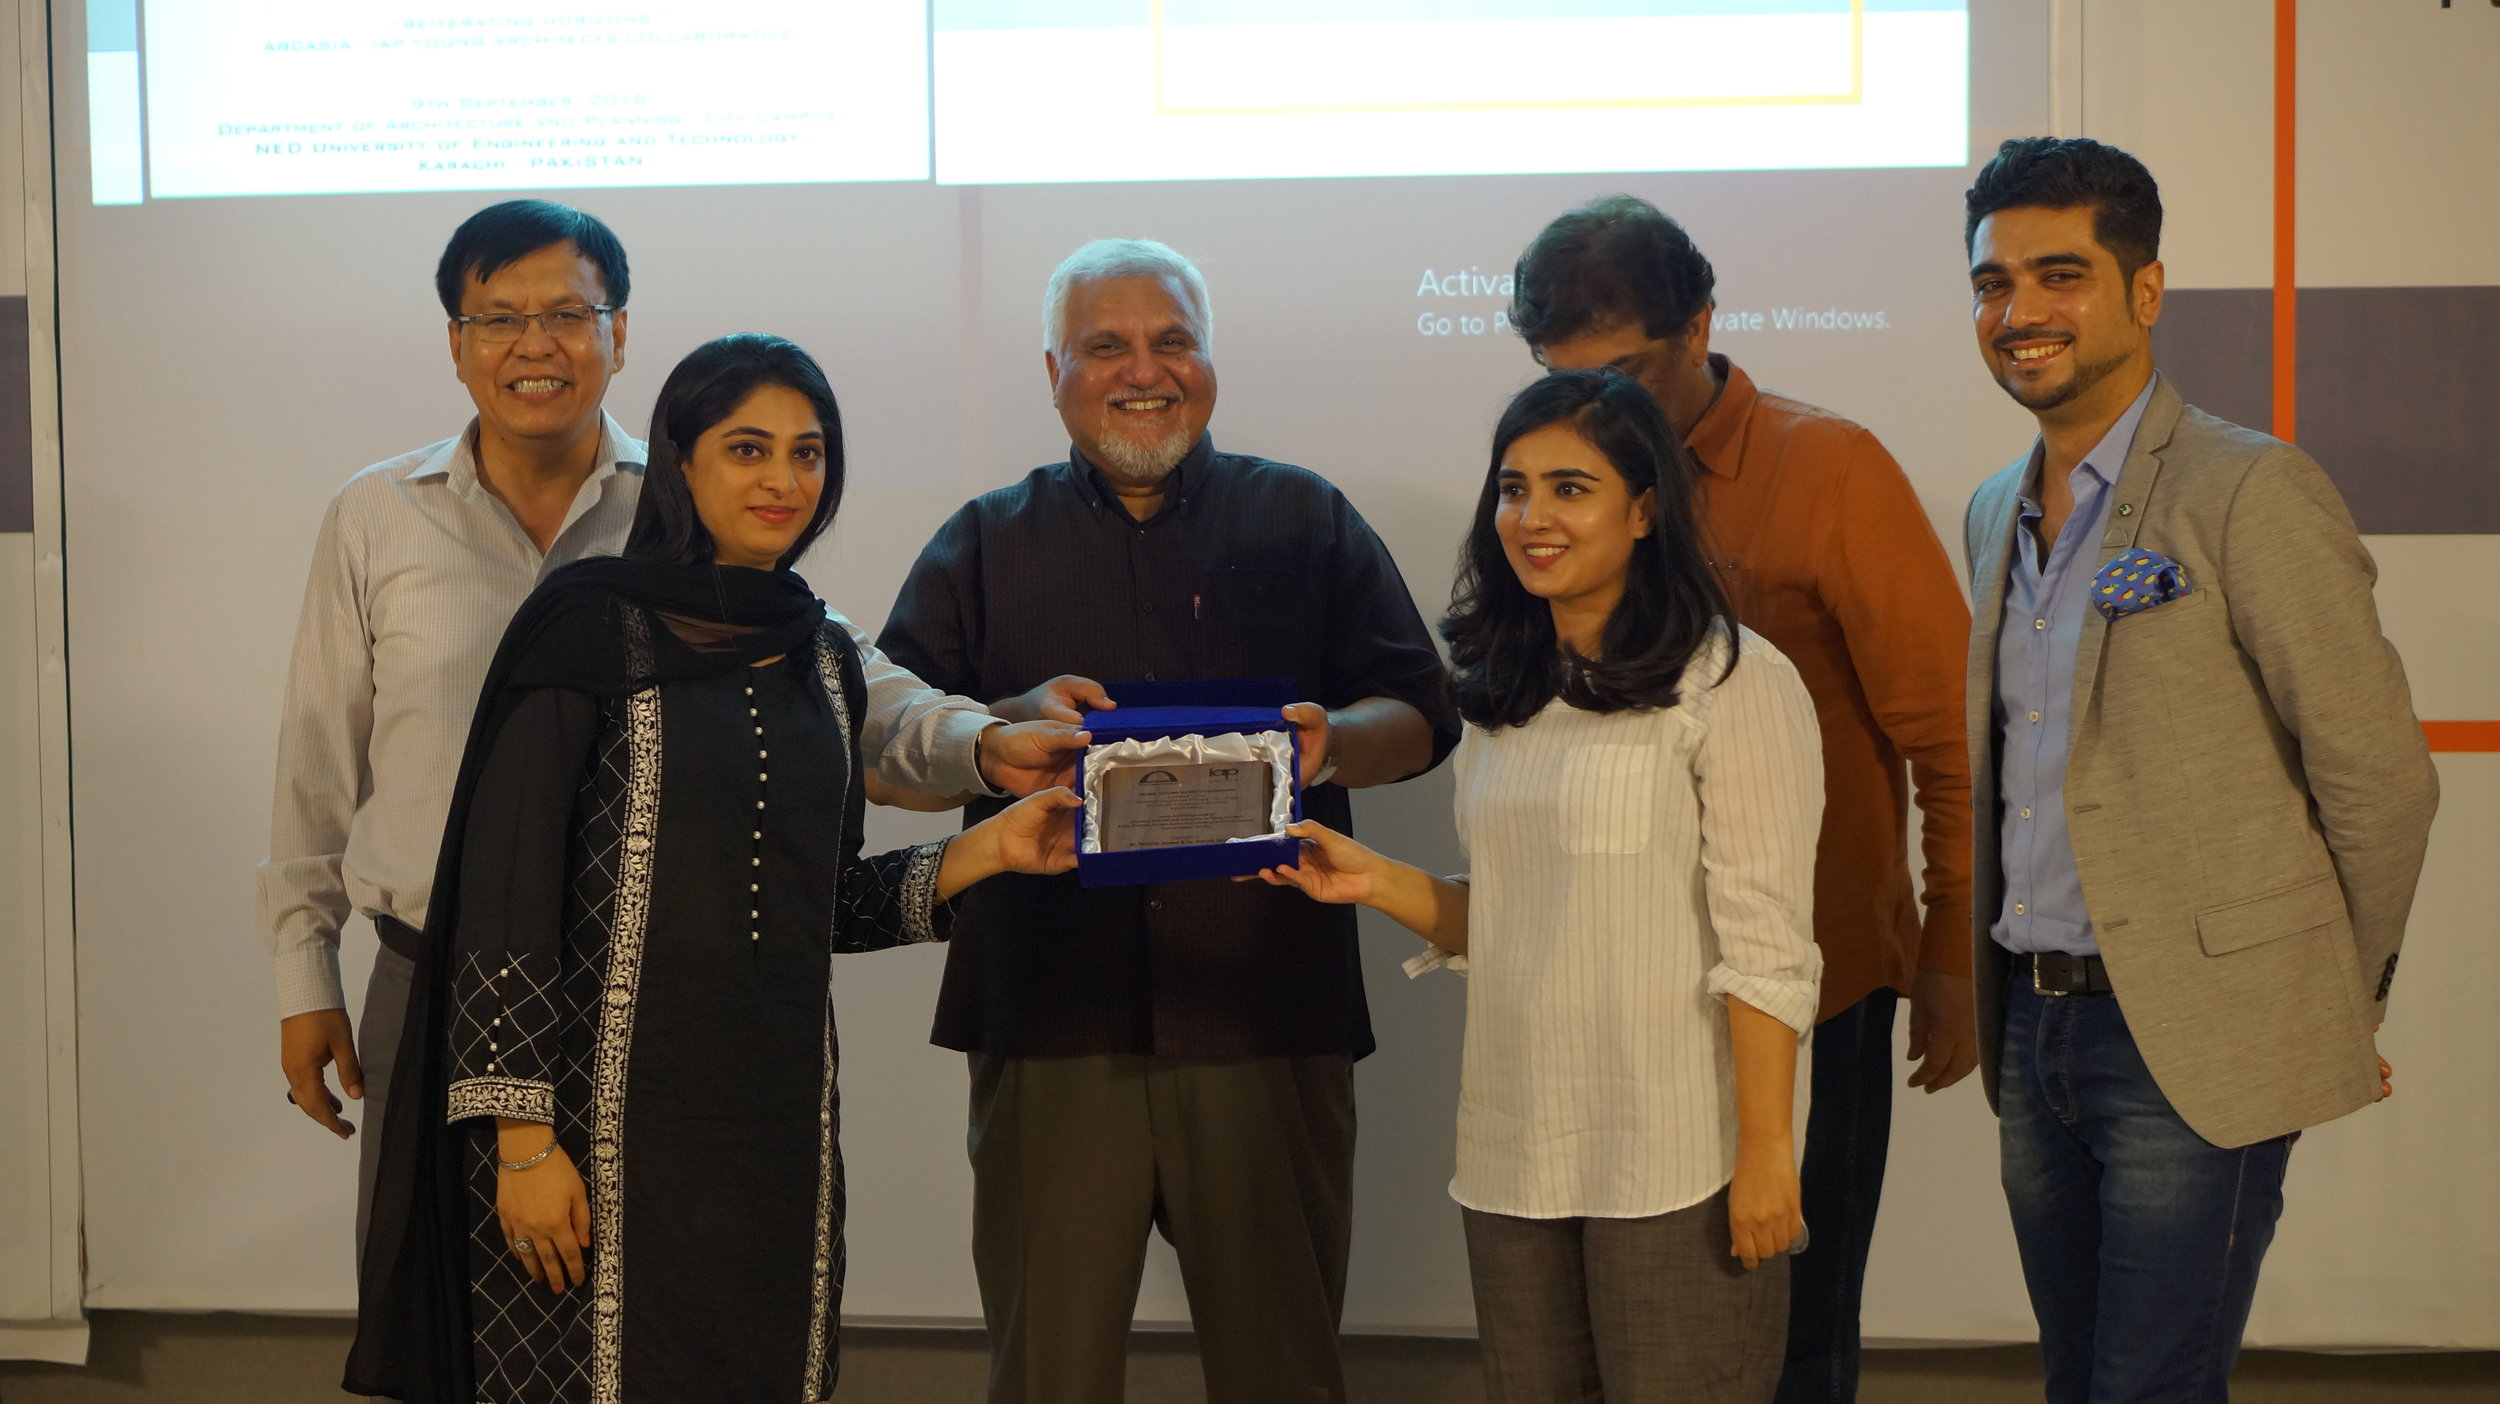 ARCASIA – IAP Young Architects Collaborative Seminar in Karachi on 9th September 2016. Architect Yumna Javed and Faryal Memon receiving participants award for representing Marvi Mazhar & Associates.